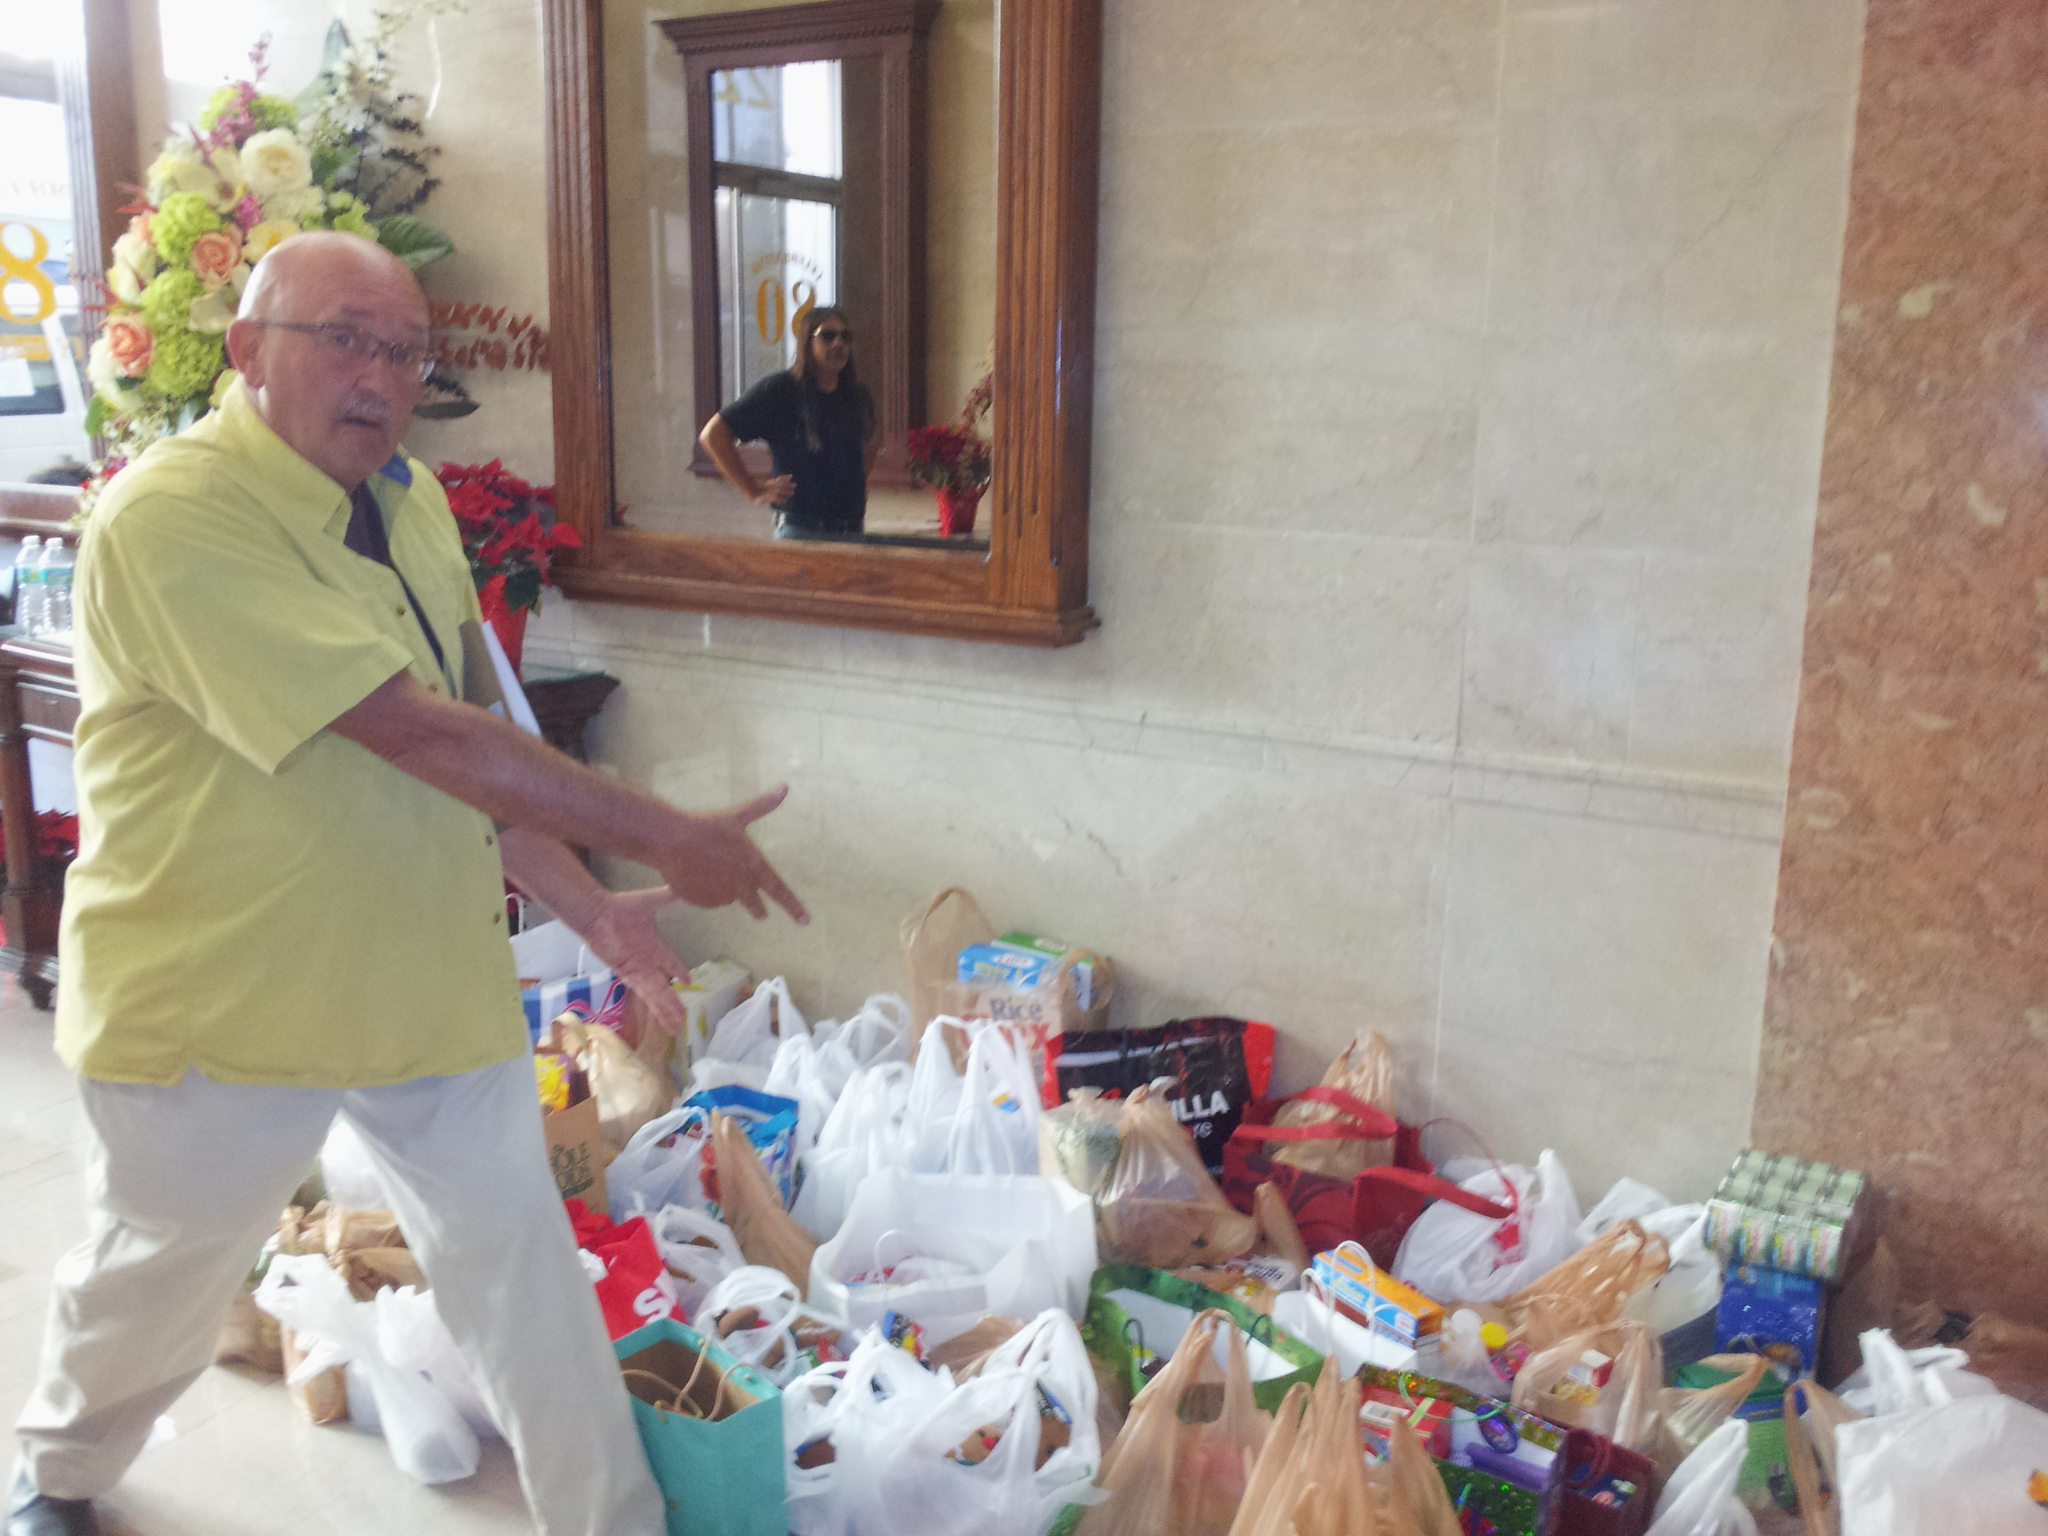 Holiday Open House 2012, at the Harvey Building in West Palm Beach. We raised a lot of food!